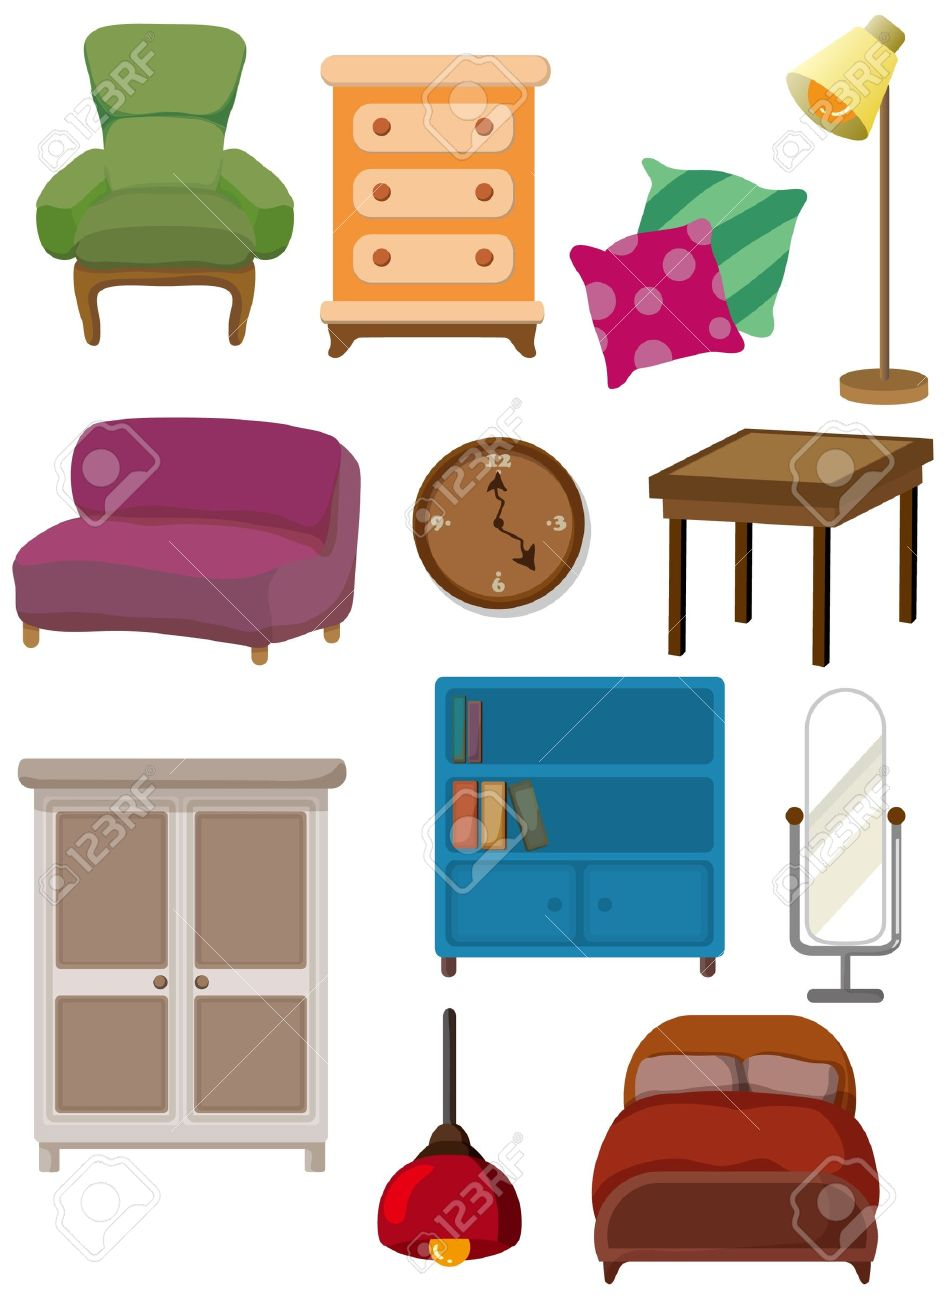 Cartoon Furniture Icon Royalty Free Cliparts Vectors And Stock  # Muebles De Caeton